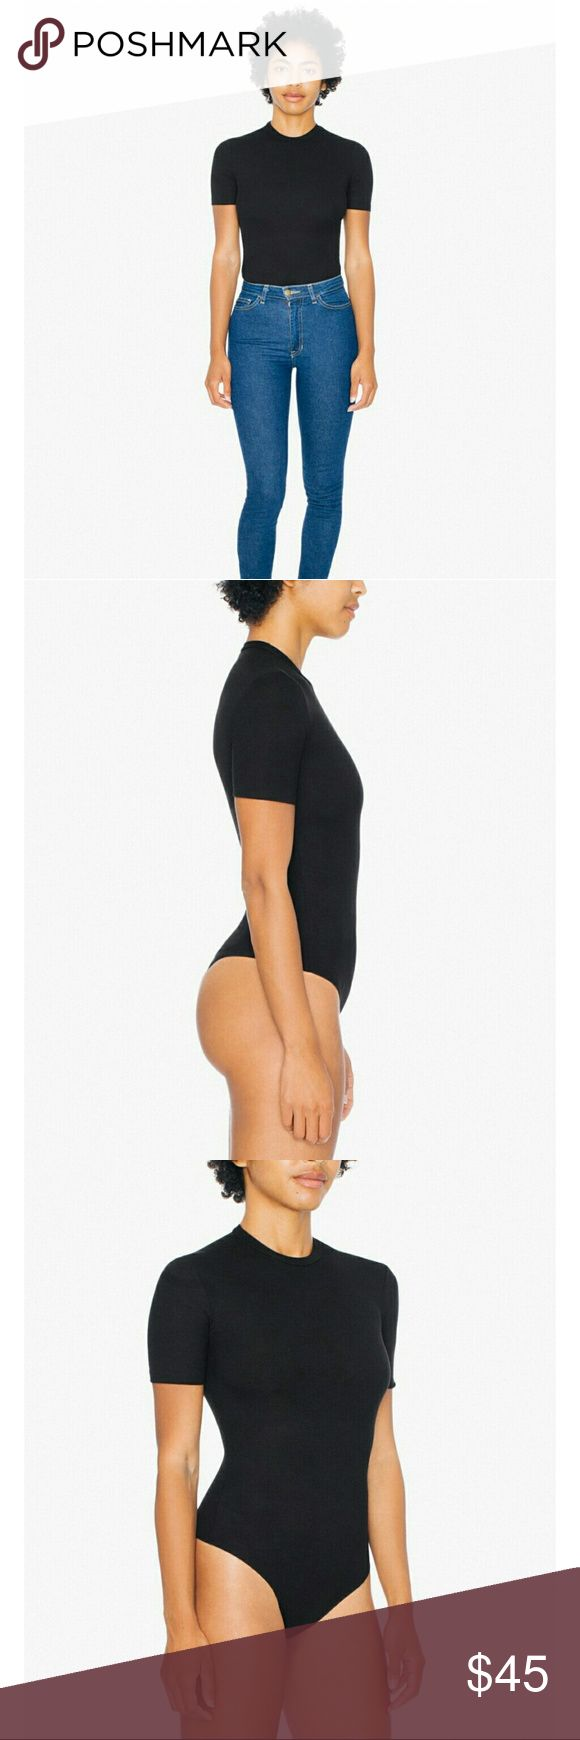 NWT AMERICAN APPAREL ribbed tshirt bodysuit New with tags! Perfect to pair with high waist jeans, skirts, and pants. Soft and stretchy, thong style avoids pantylines. Size medium but could fit 2-8. American Apparel Tops